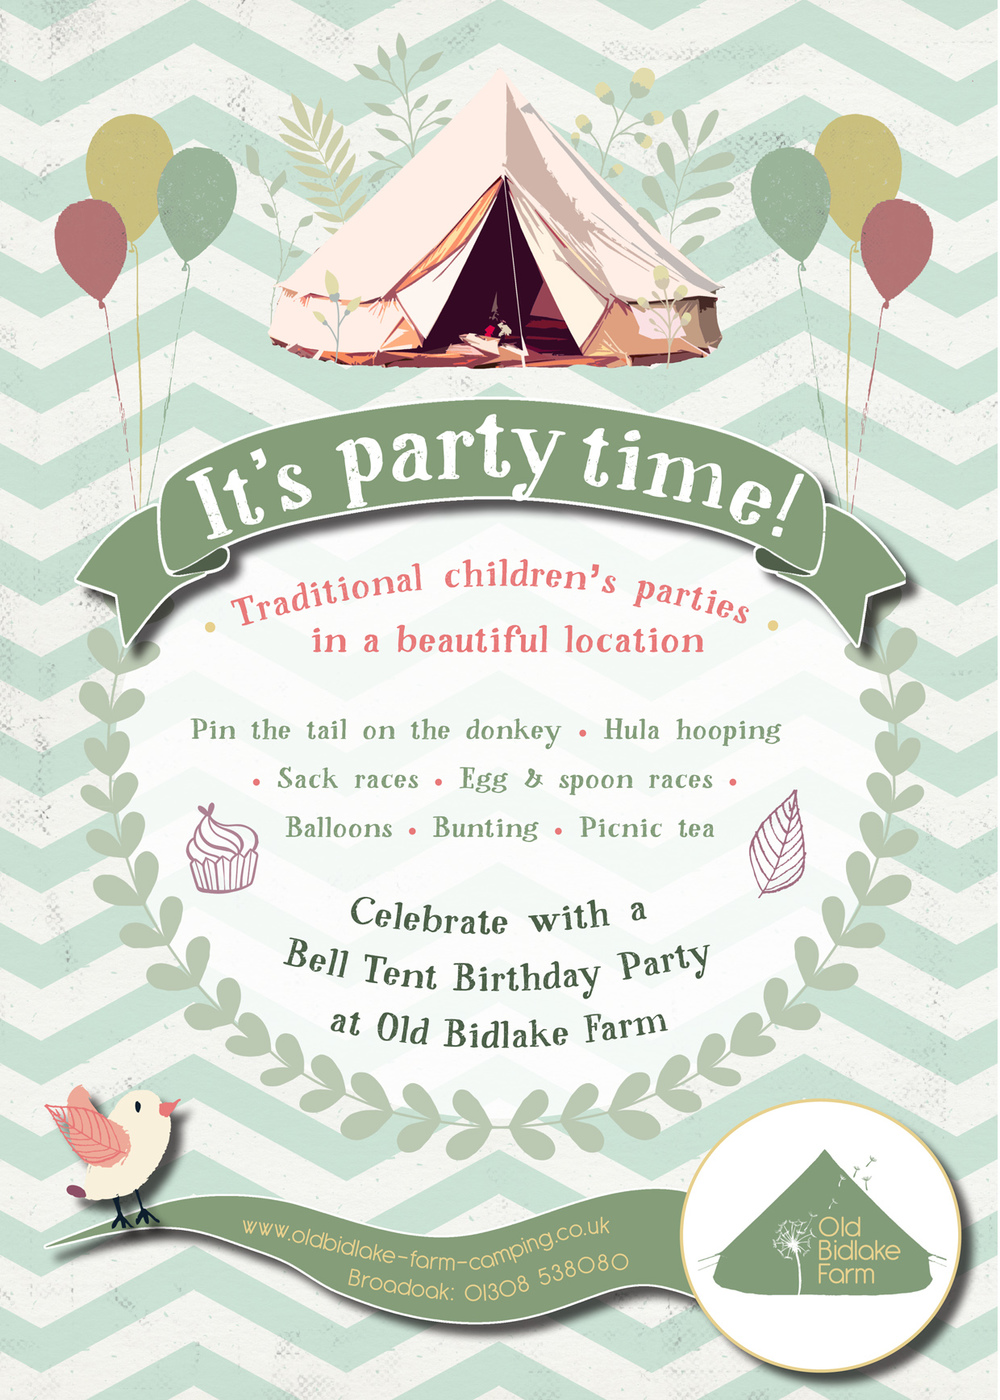 Bell Tent birthday parties flyer